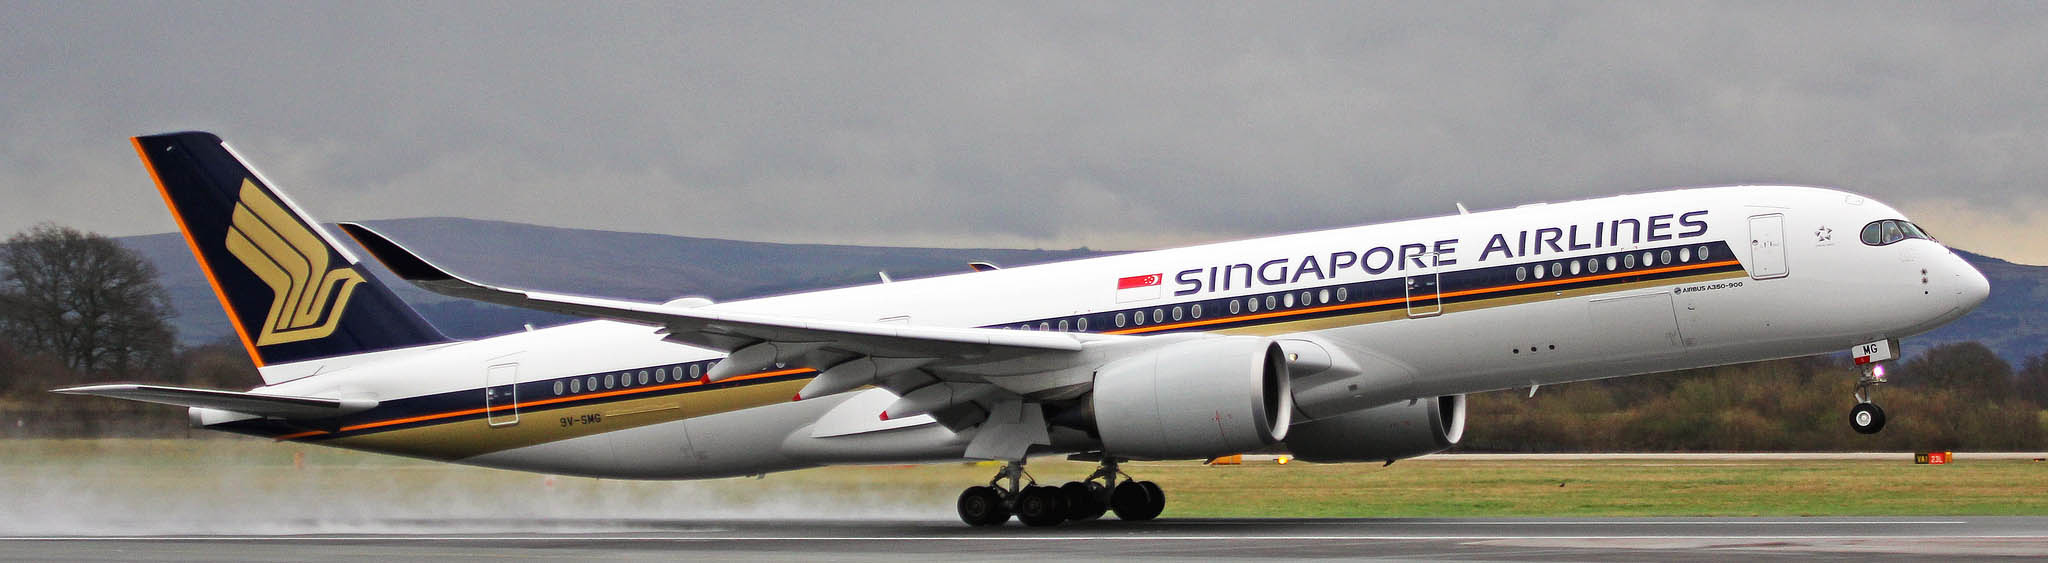 Singapore Airlines A350 at touchdown